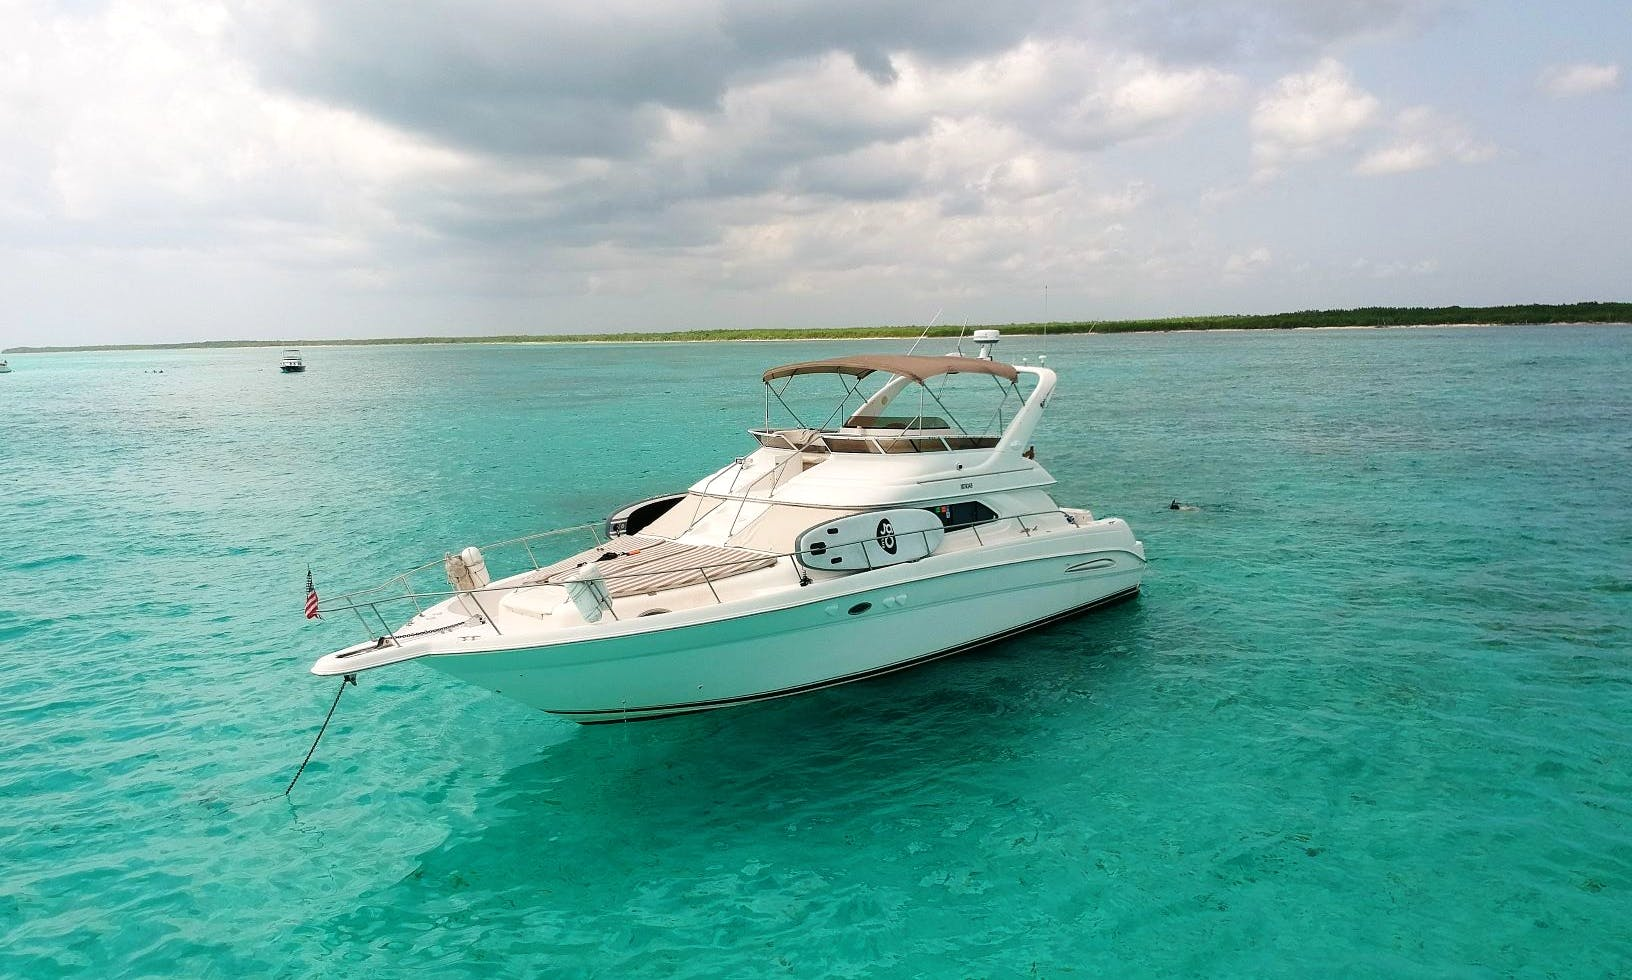 51' Sea Ray Last Minute Deals